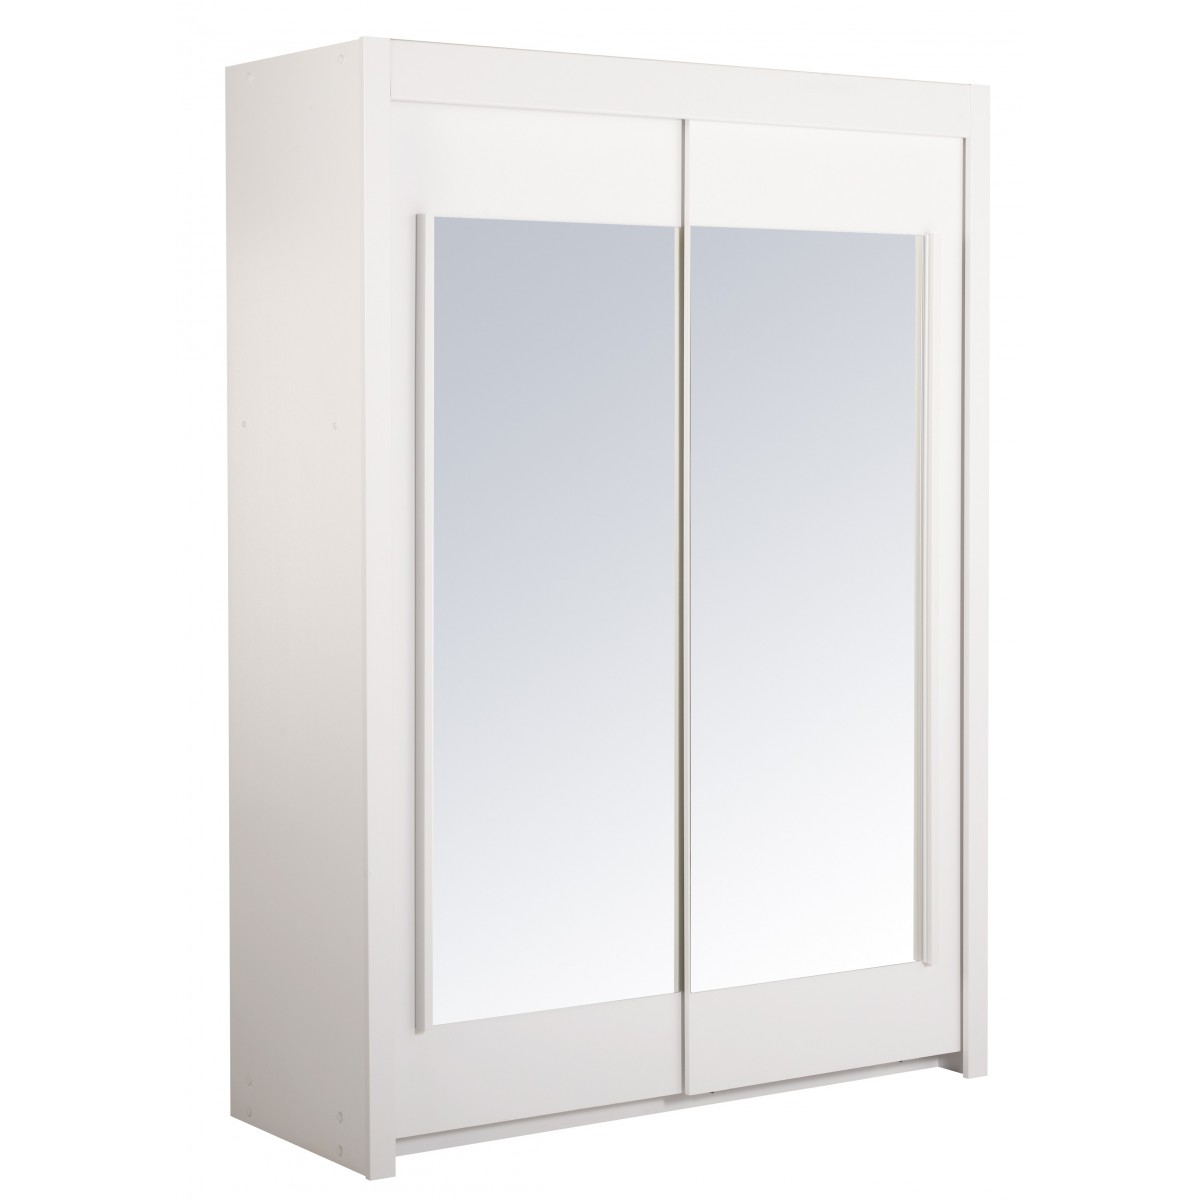 altobuy universal blanc armoire 2 portes coulissantes neuf ebay. Black Bedroom Furniture Sets. Home Design Ideas